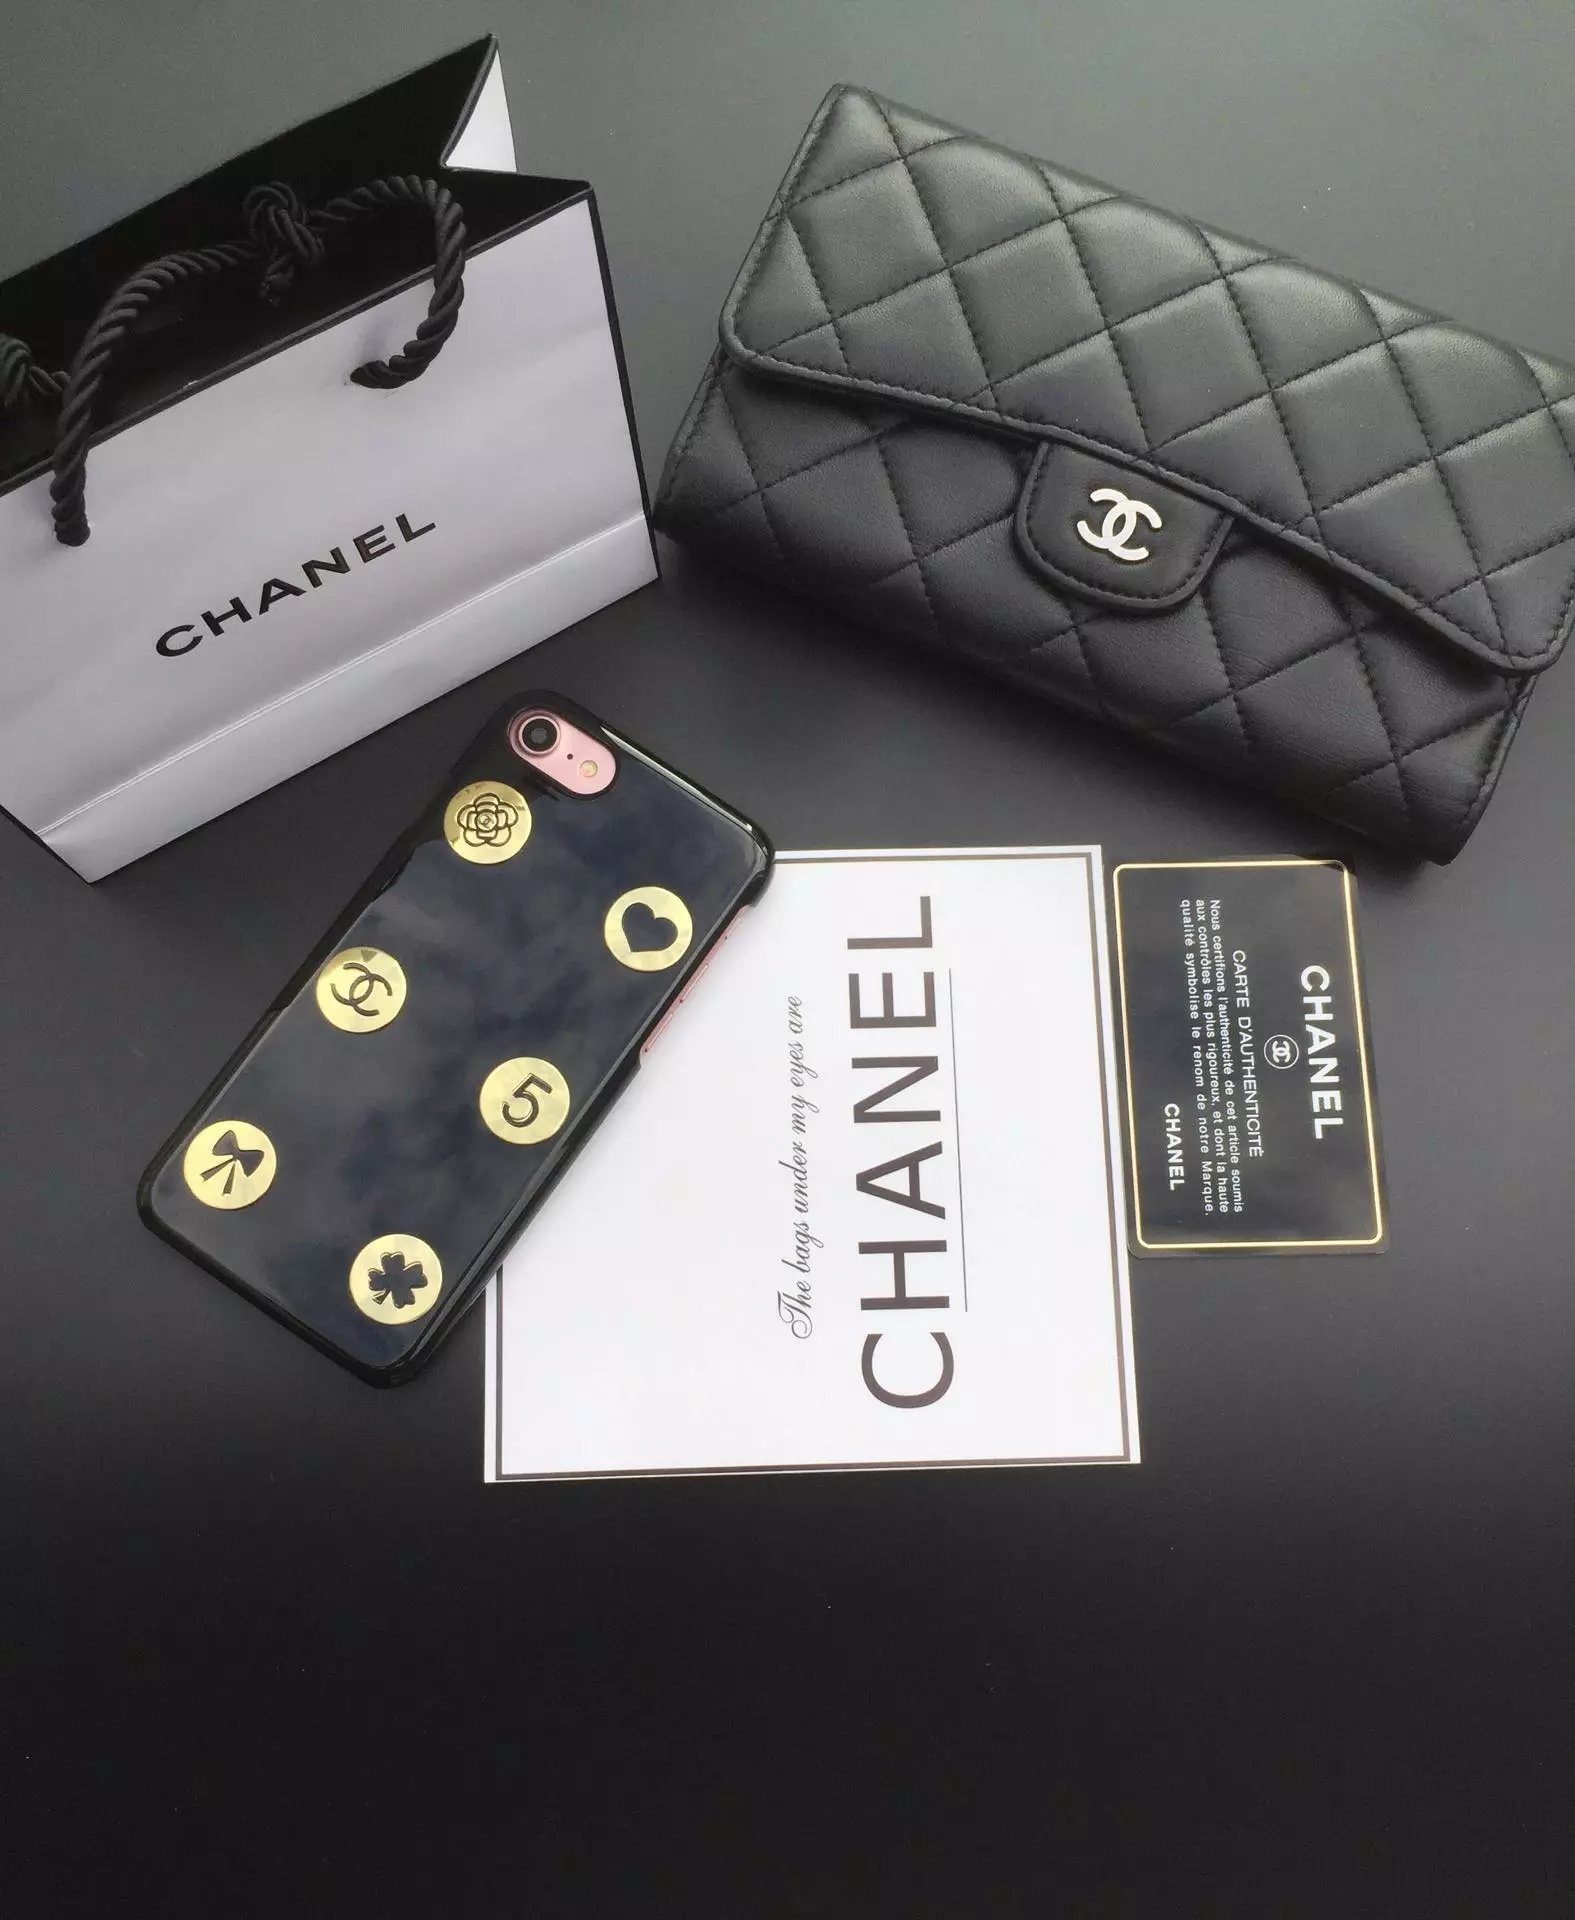 iphone hüllen shop iphone case selbst gestalten Chanel iphone7 Plus hülle htc one hülle 7lbst gestalten handy schutzhüllen 7lbst gestalten iphone ca7 ilikon iphone 7 Plus a7 braun handy iphone 7 Plus iphone 7 Plus hülle 7lbst designen